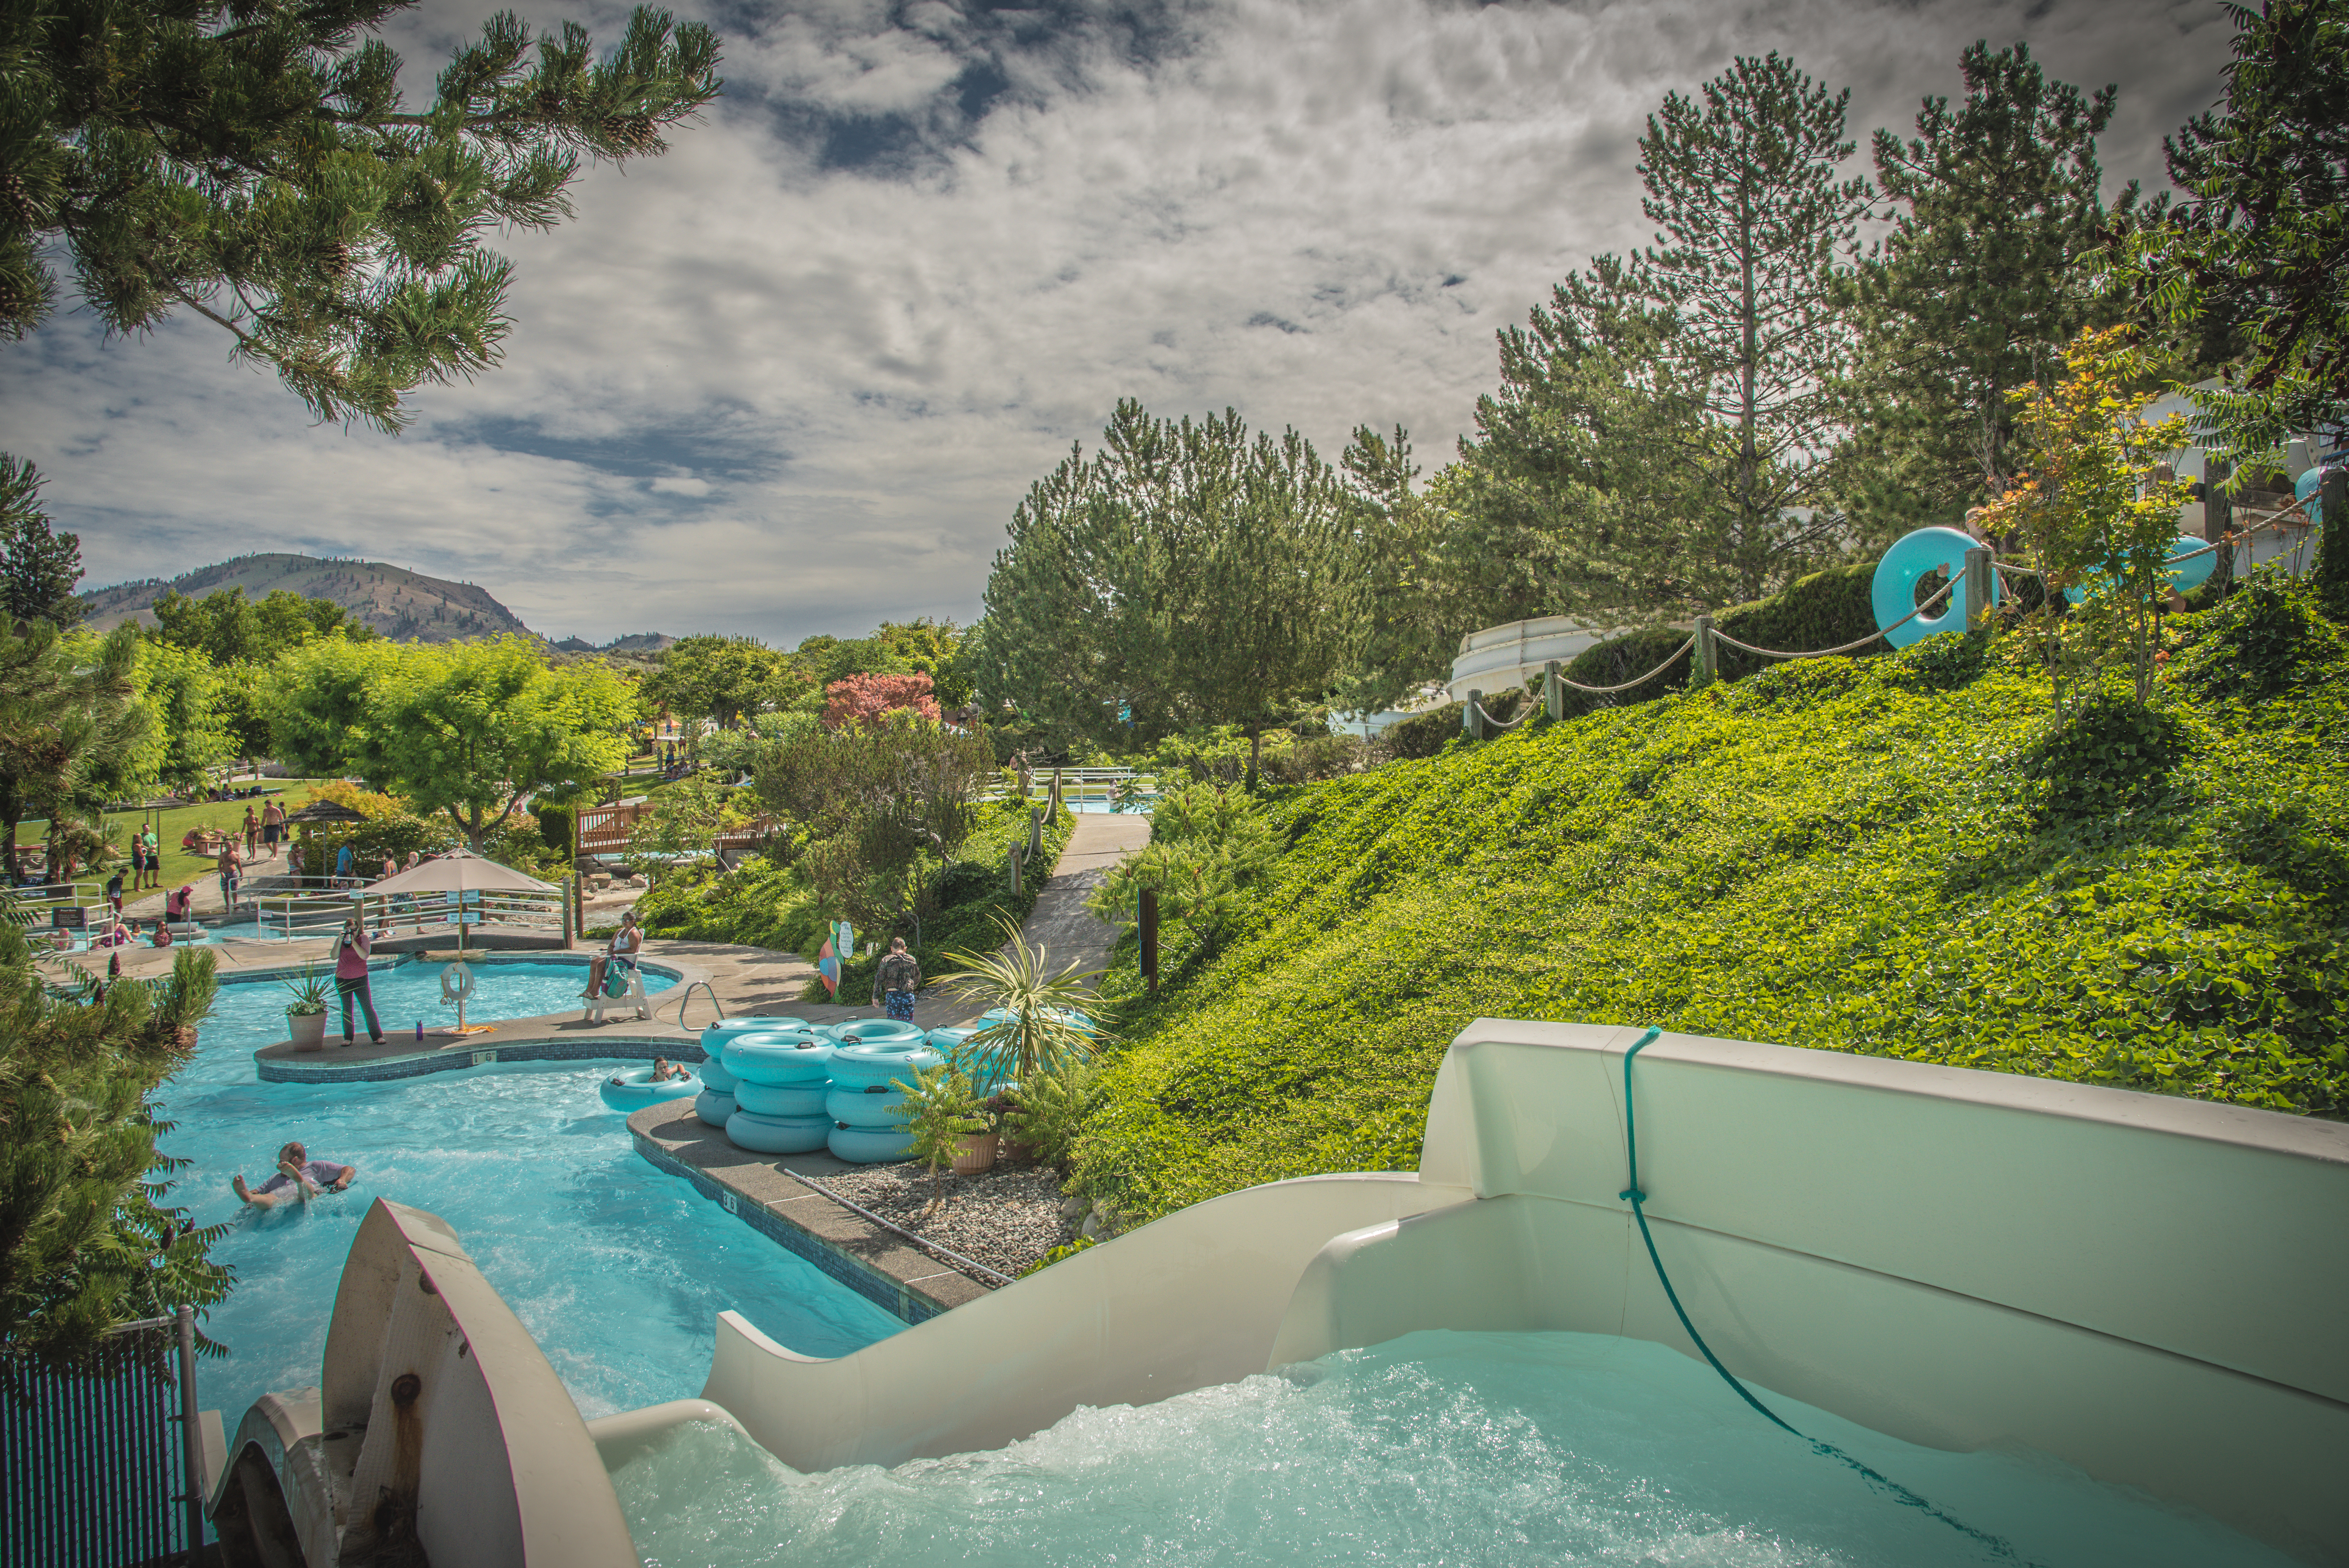 Tickets for Slidewaters Lake Chelan